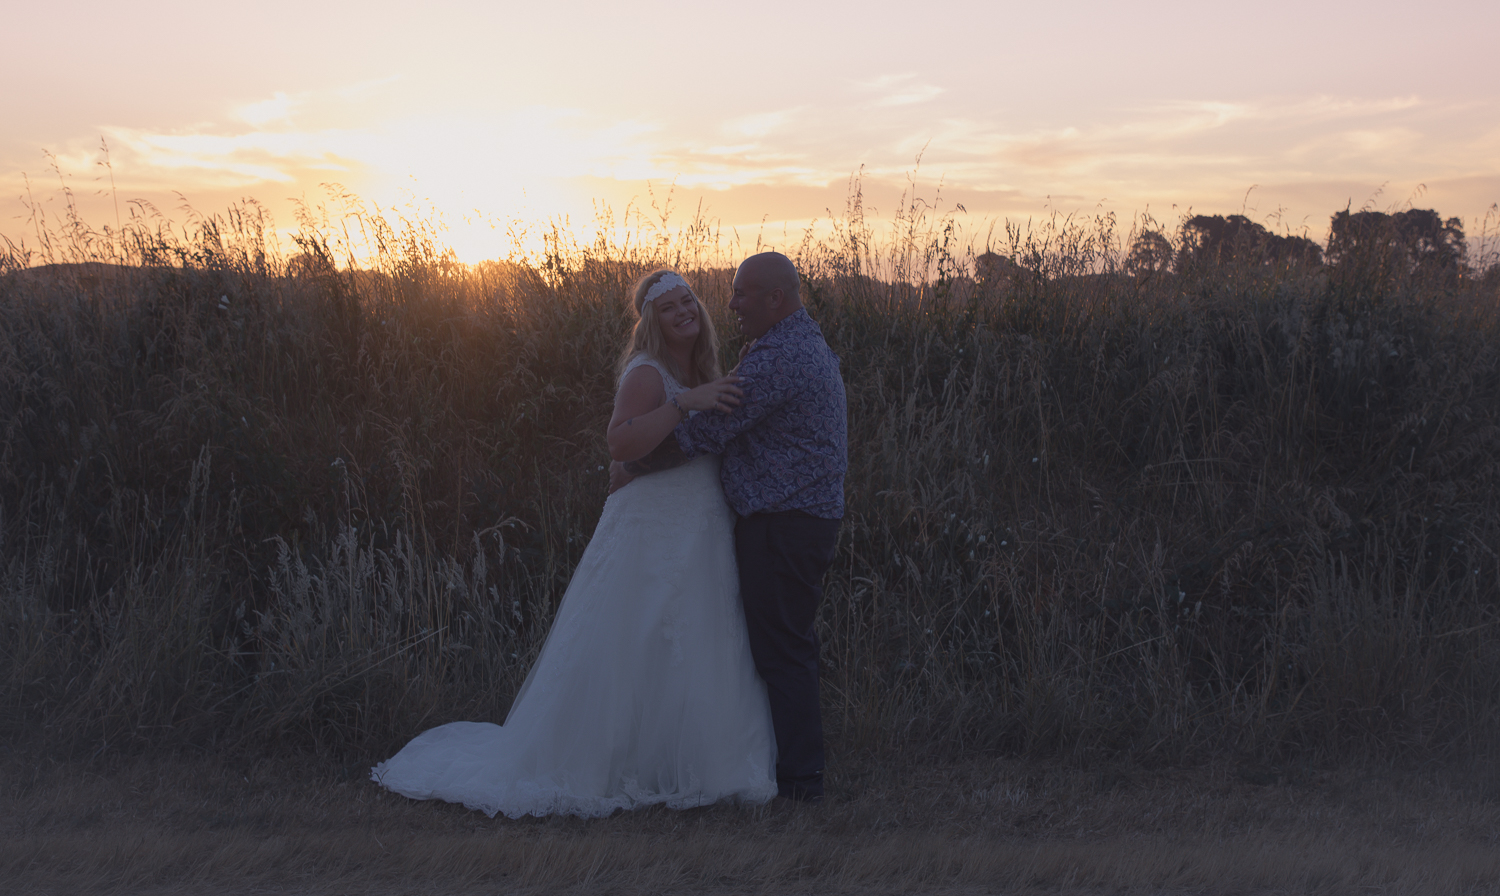 wedding-photography-bride-and-groom-laughing-together-at-sunset.jpg